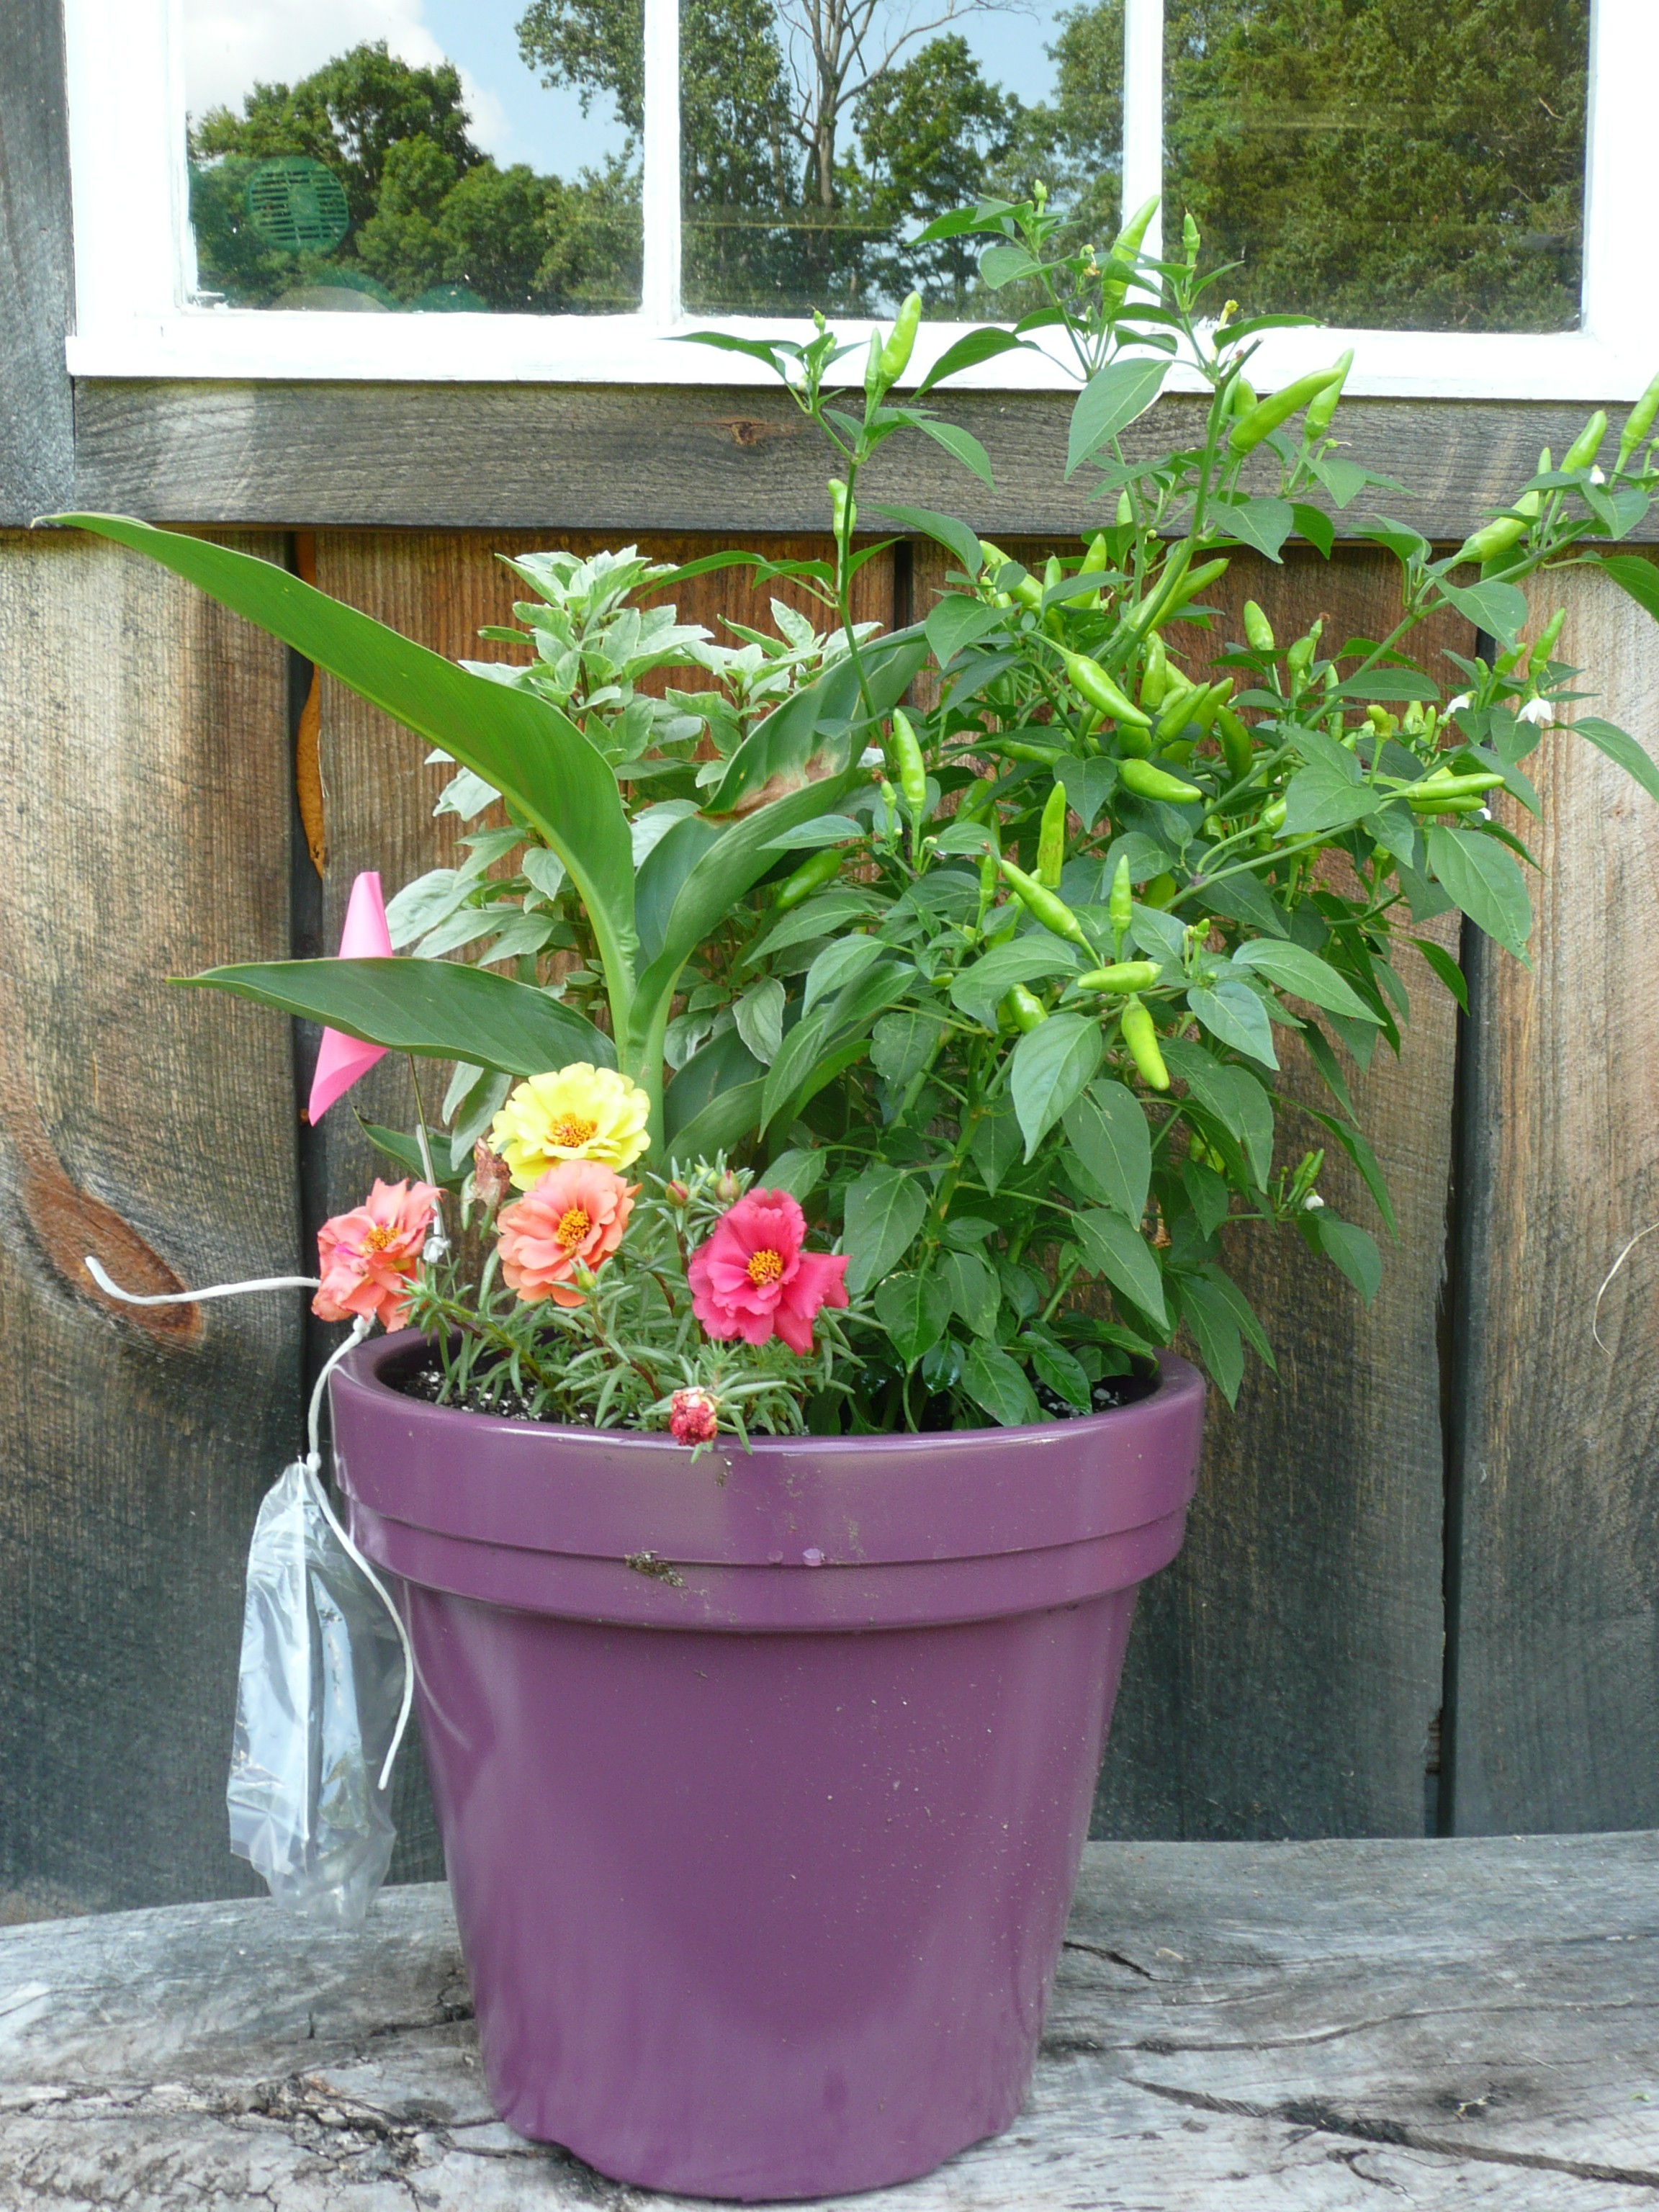 The fashionable and hot capsicum super chili pepper container